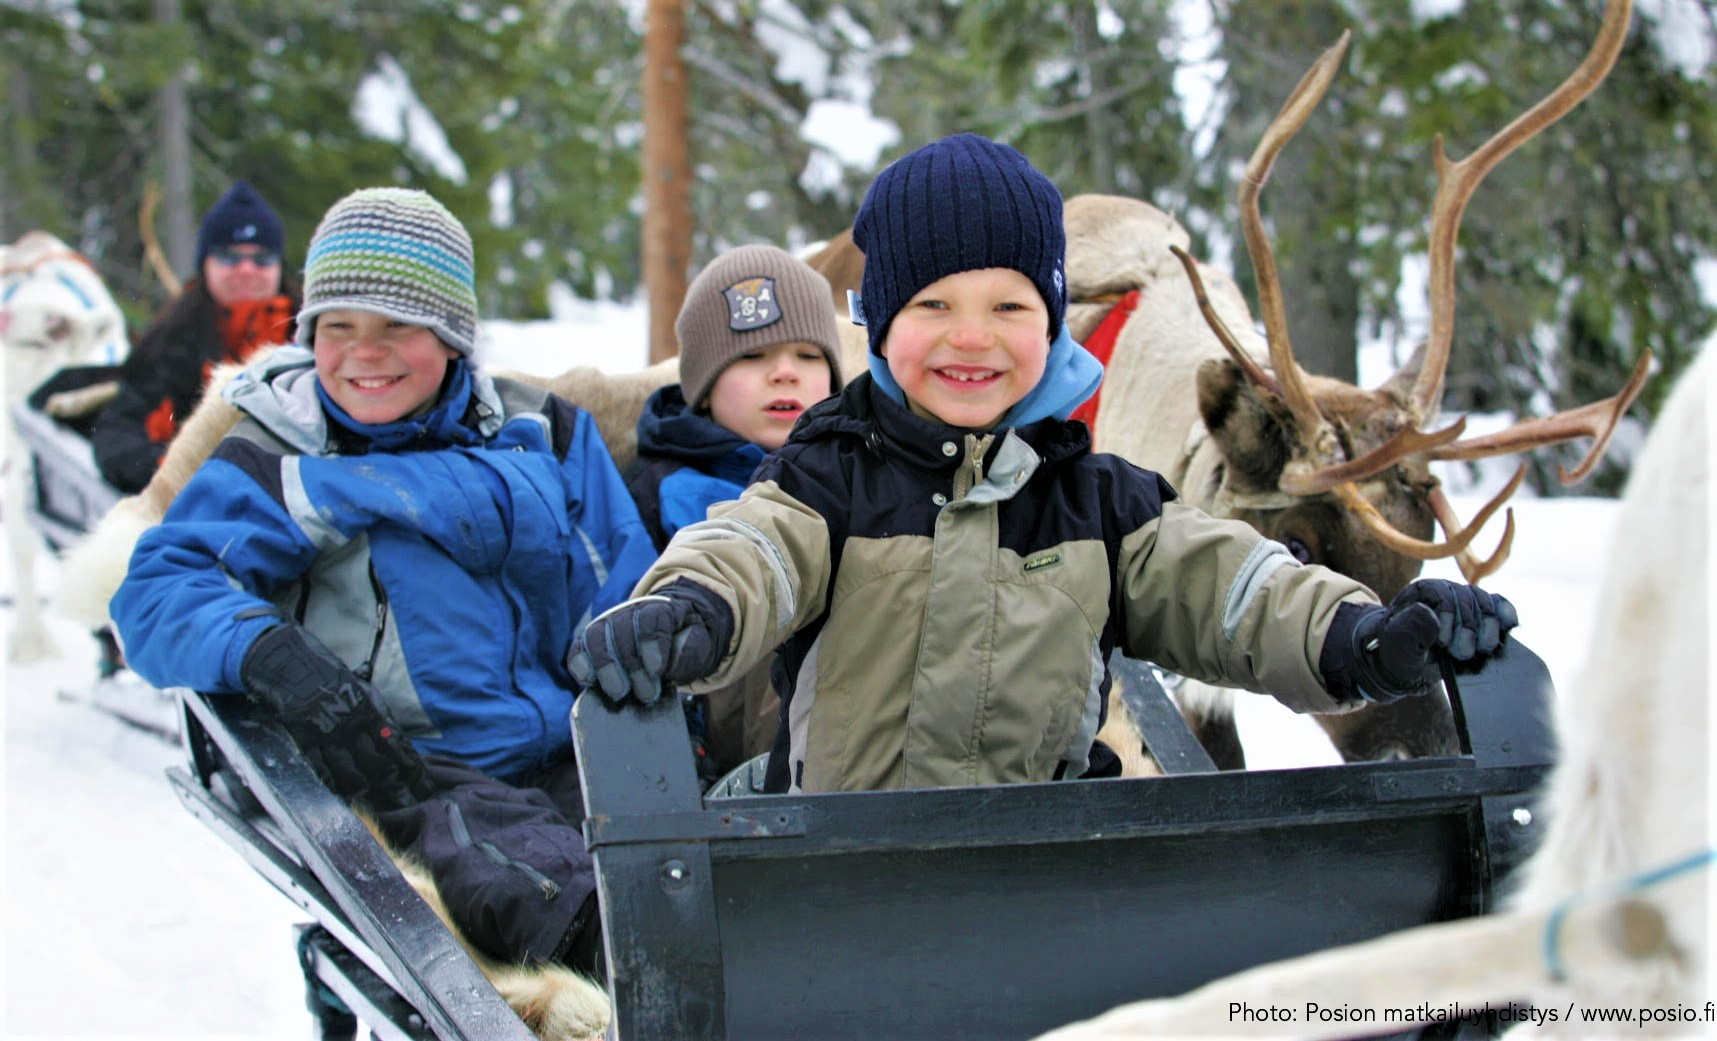 Kids excited to take a reindeer sleigh ride in Posio